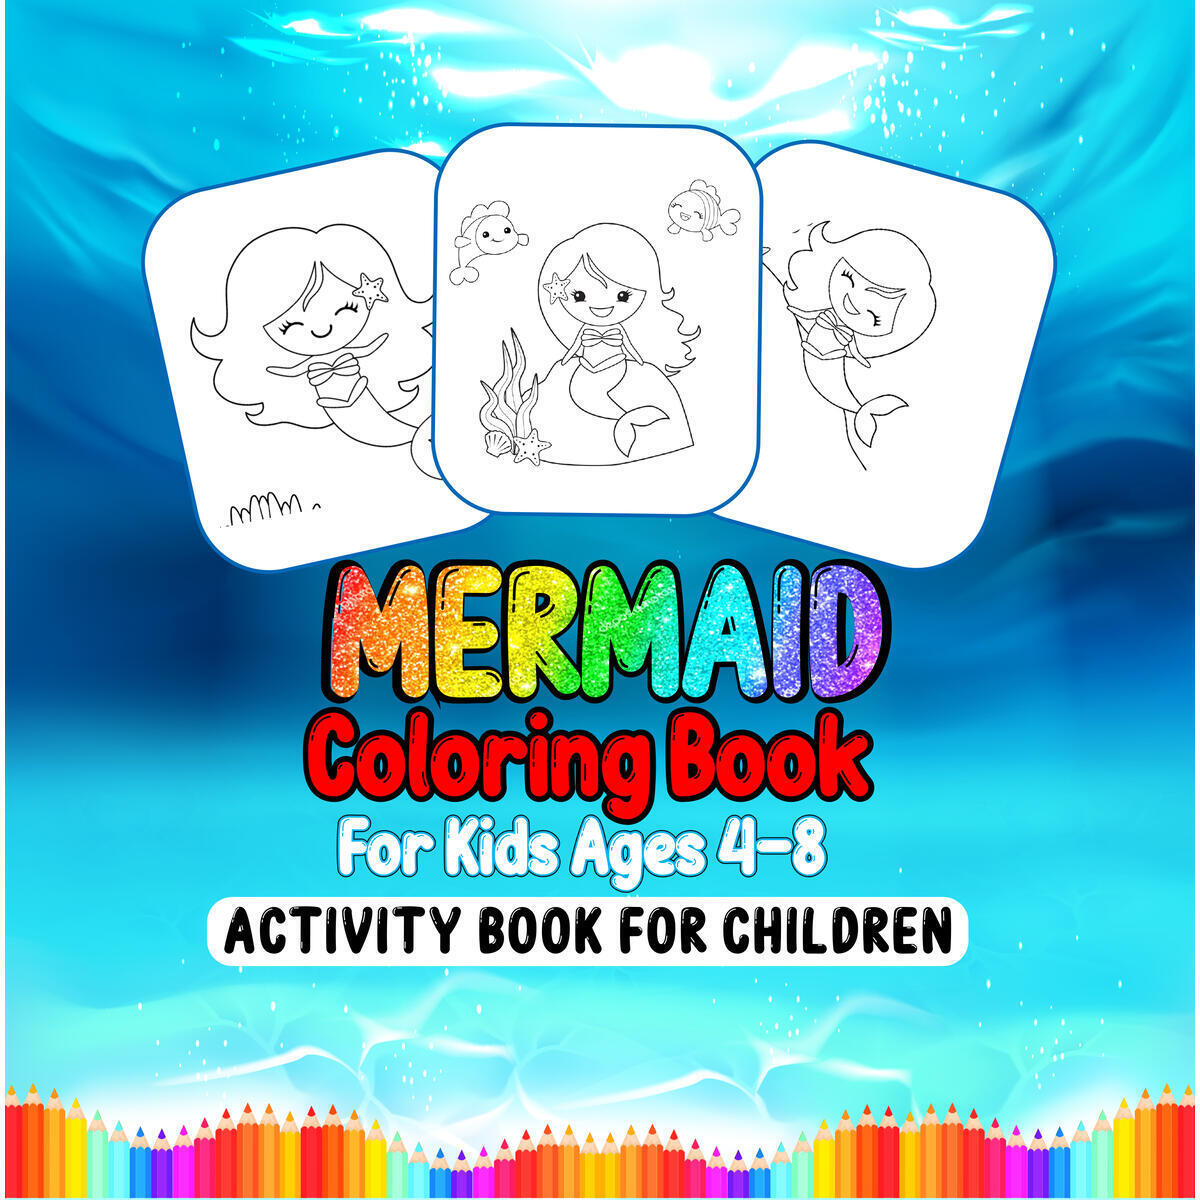 Mermaid Coloring Book For Kids Ages 4-8: Activity Book For Children